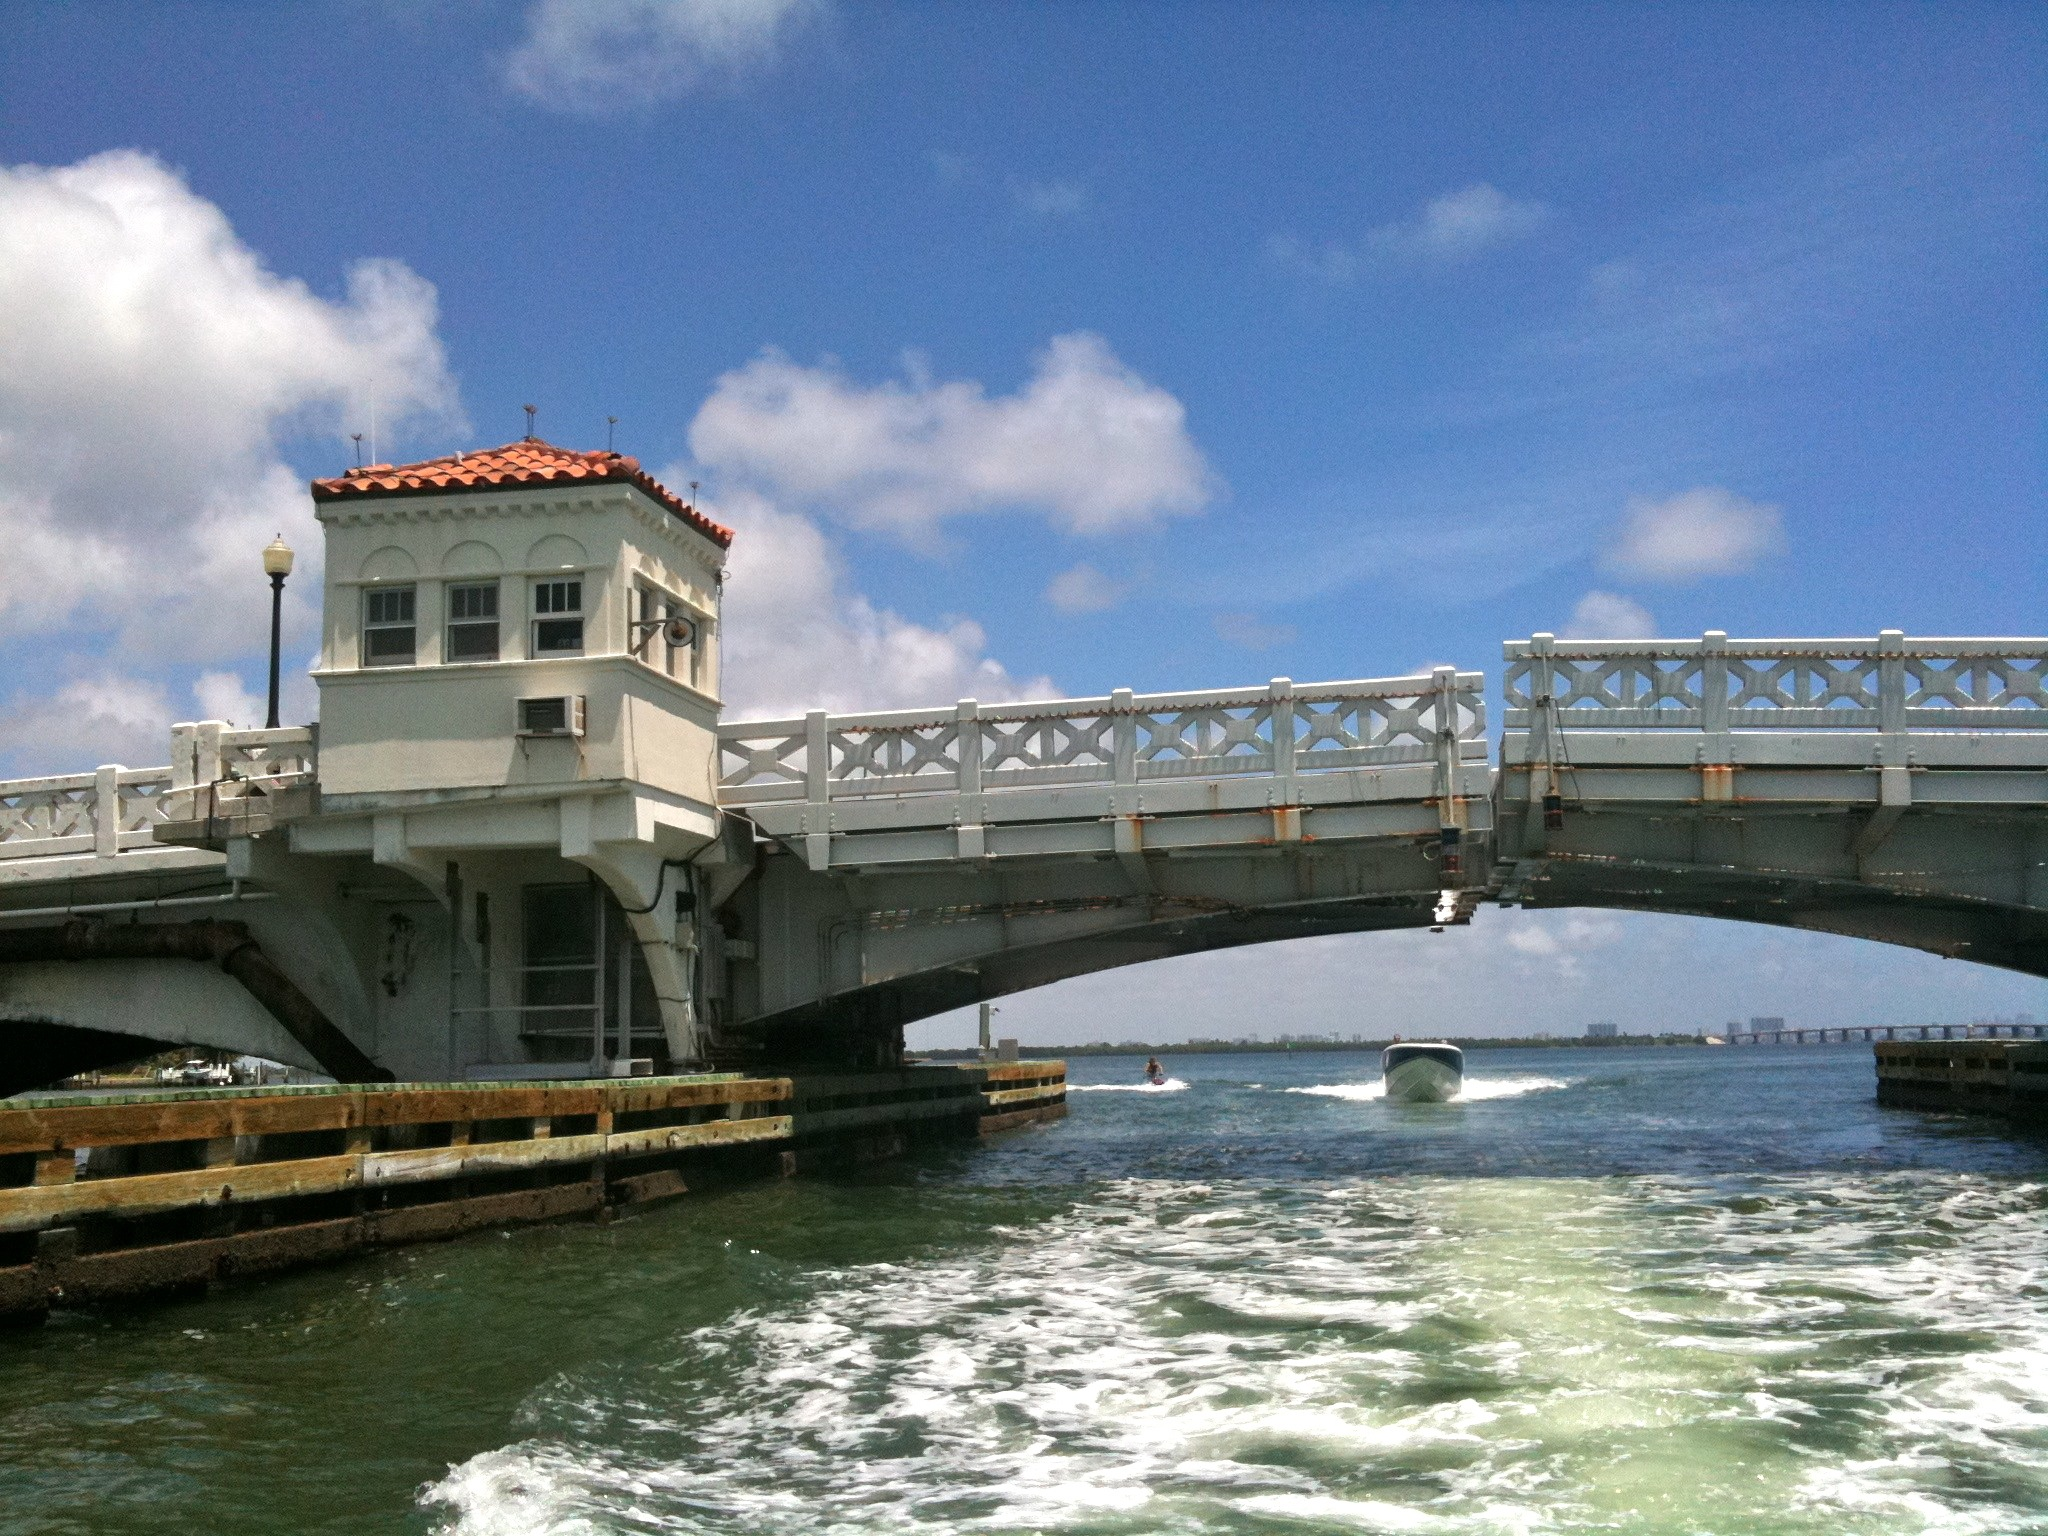 File Venetian Causeway East Drawbridge Almost Closed After Having Raised For Boat Miami Beach